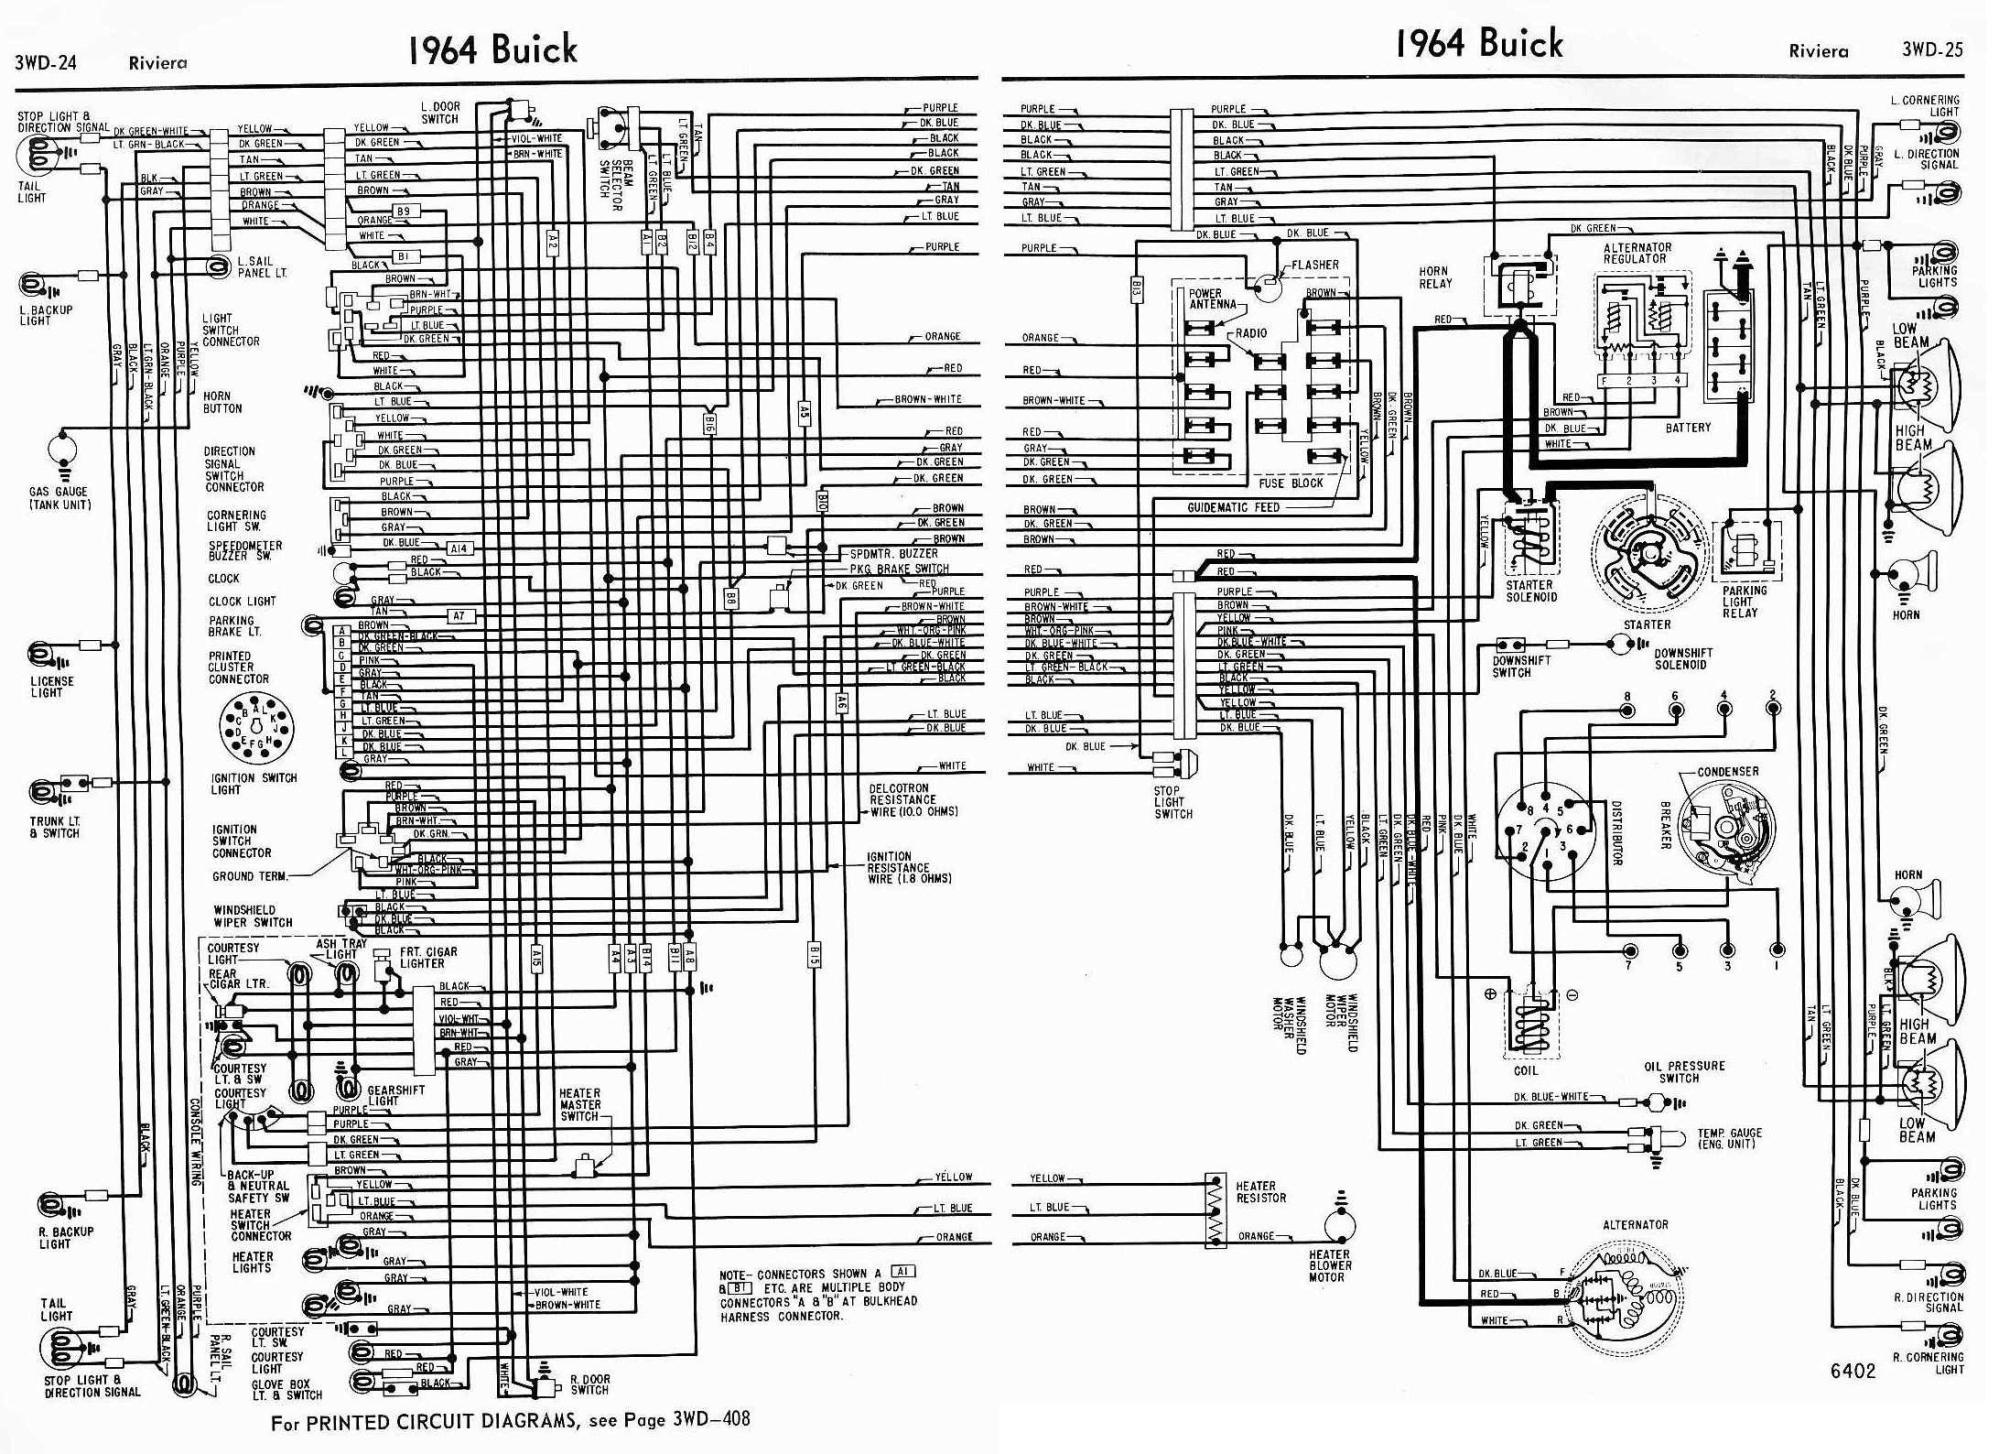 hight resolution of 1972 buick wiring diagram schematic wiring diagram pos opgir buick skylark 1964 engine wiring harness